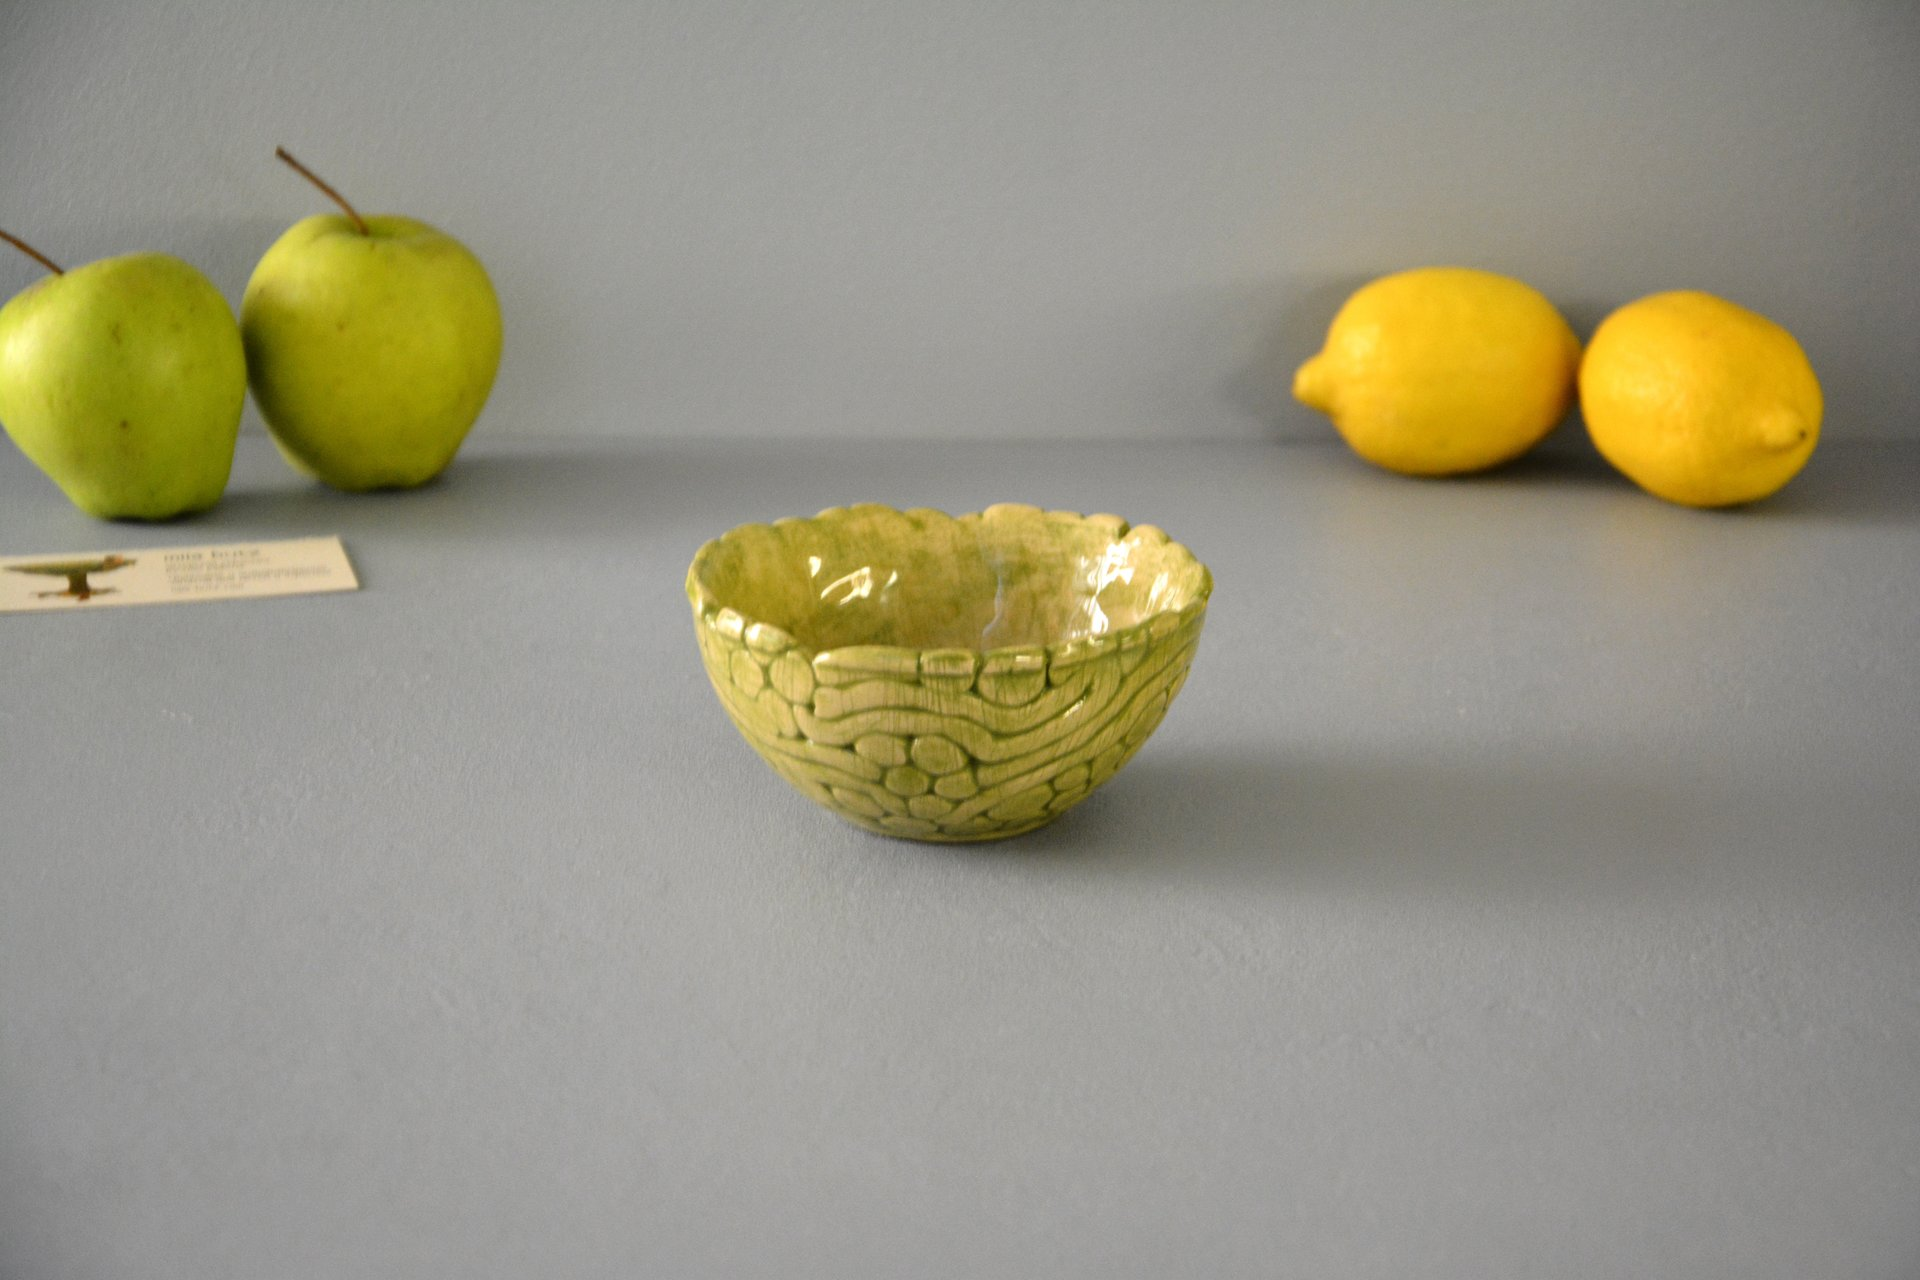 Light Green patina - Pialy and sauceboats, height - 6 cm, diameter - 11.5 cm, photo 3 of 4.